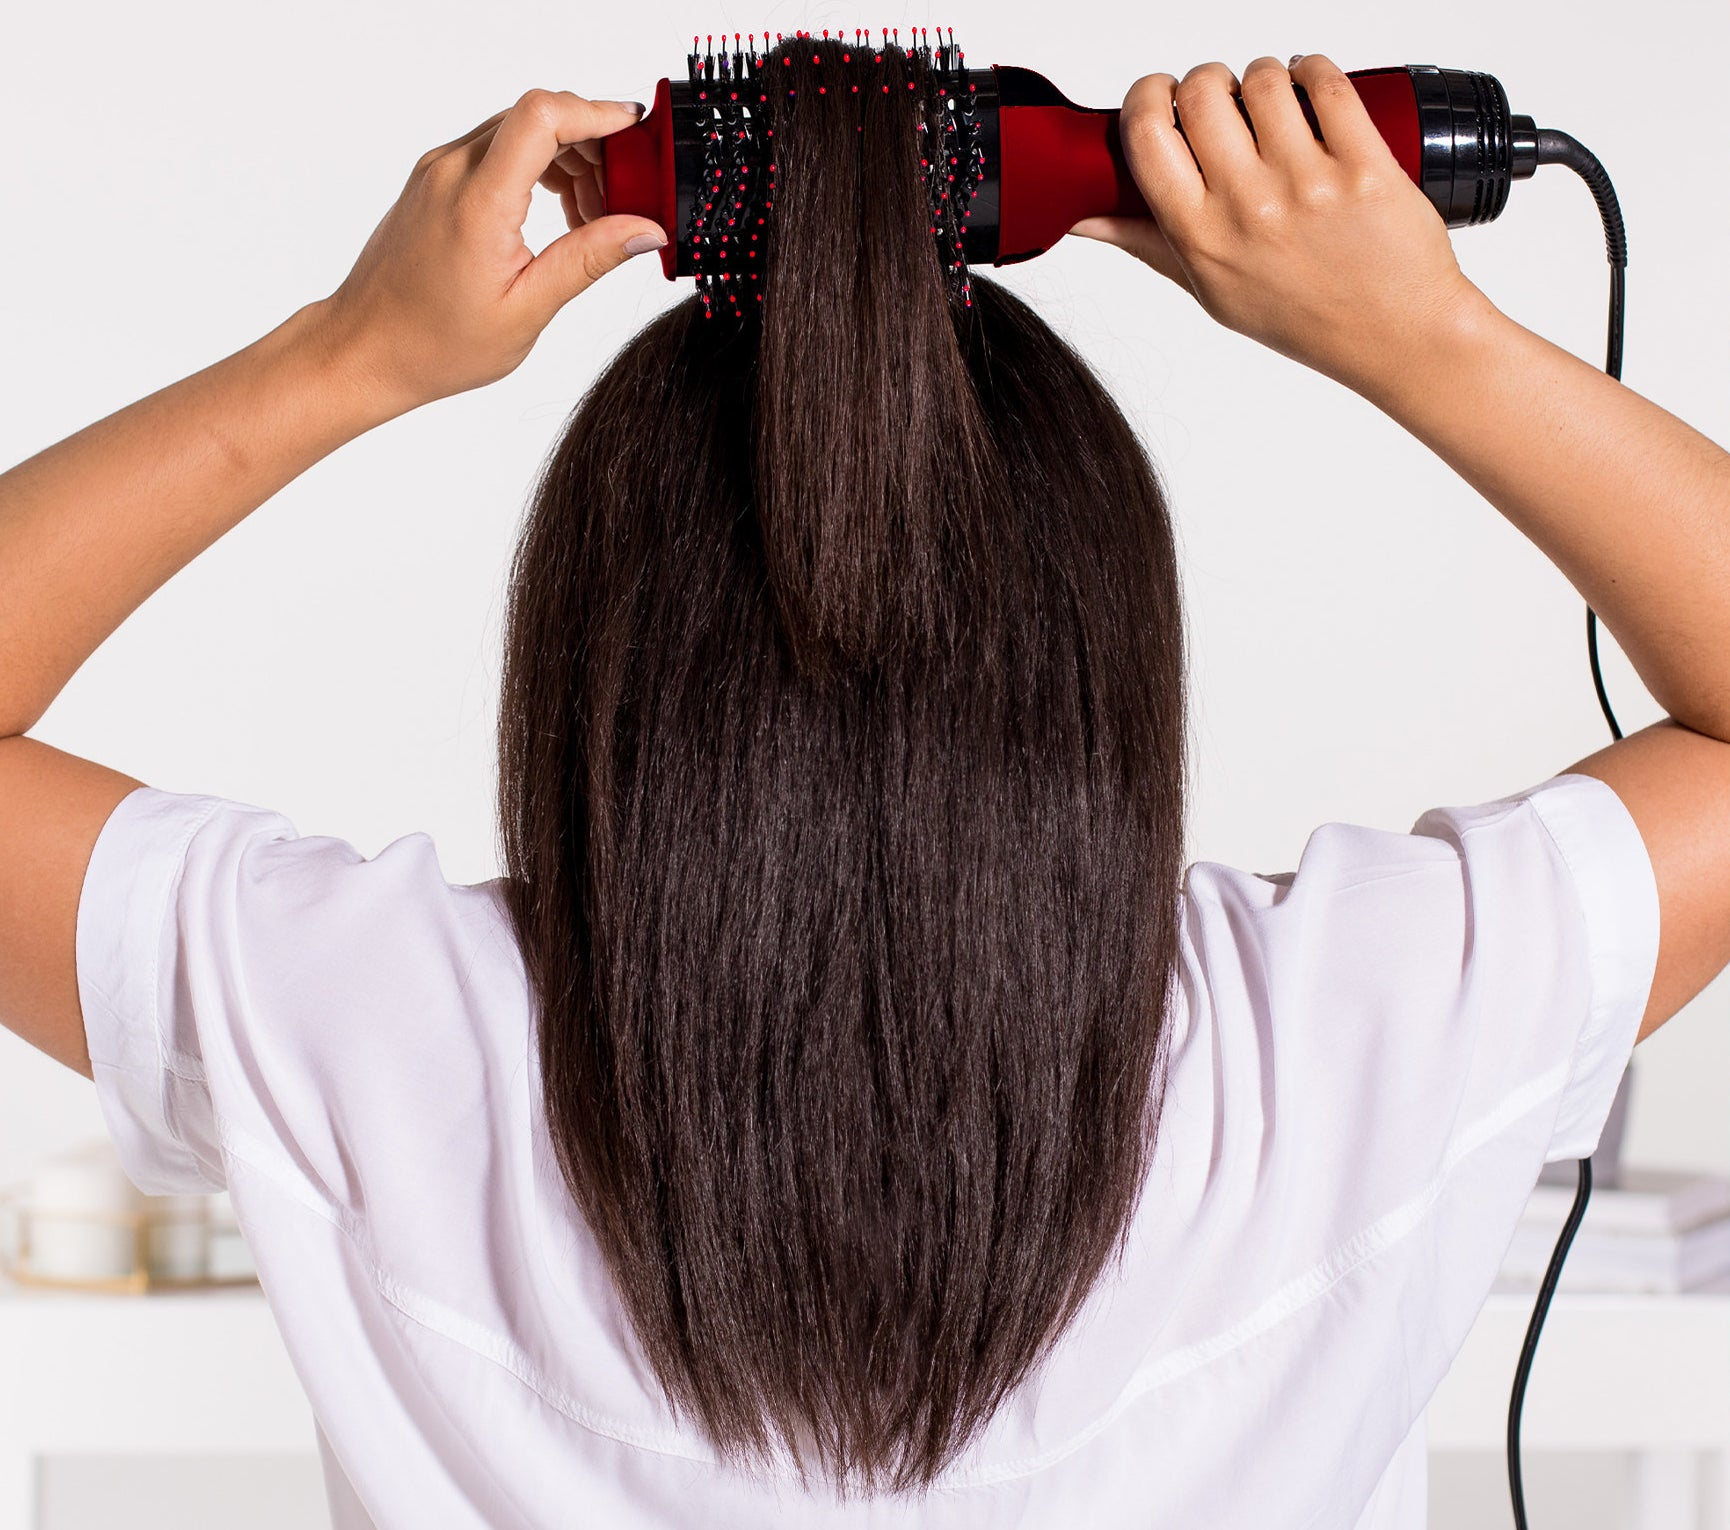 person using a revlon hot brush to style hair